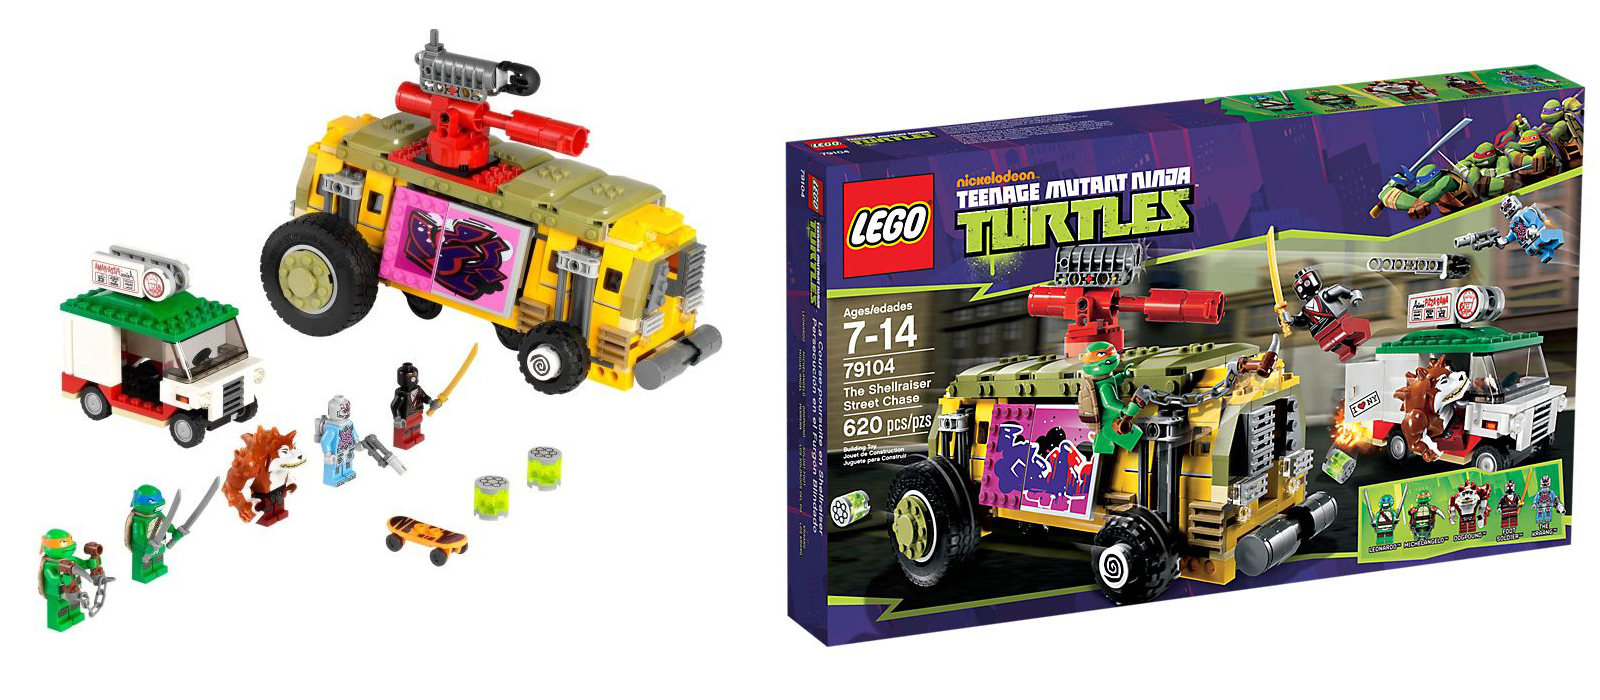 Lego Teenage Mutant Ninja Turtles Pictures From All Sets I